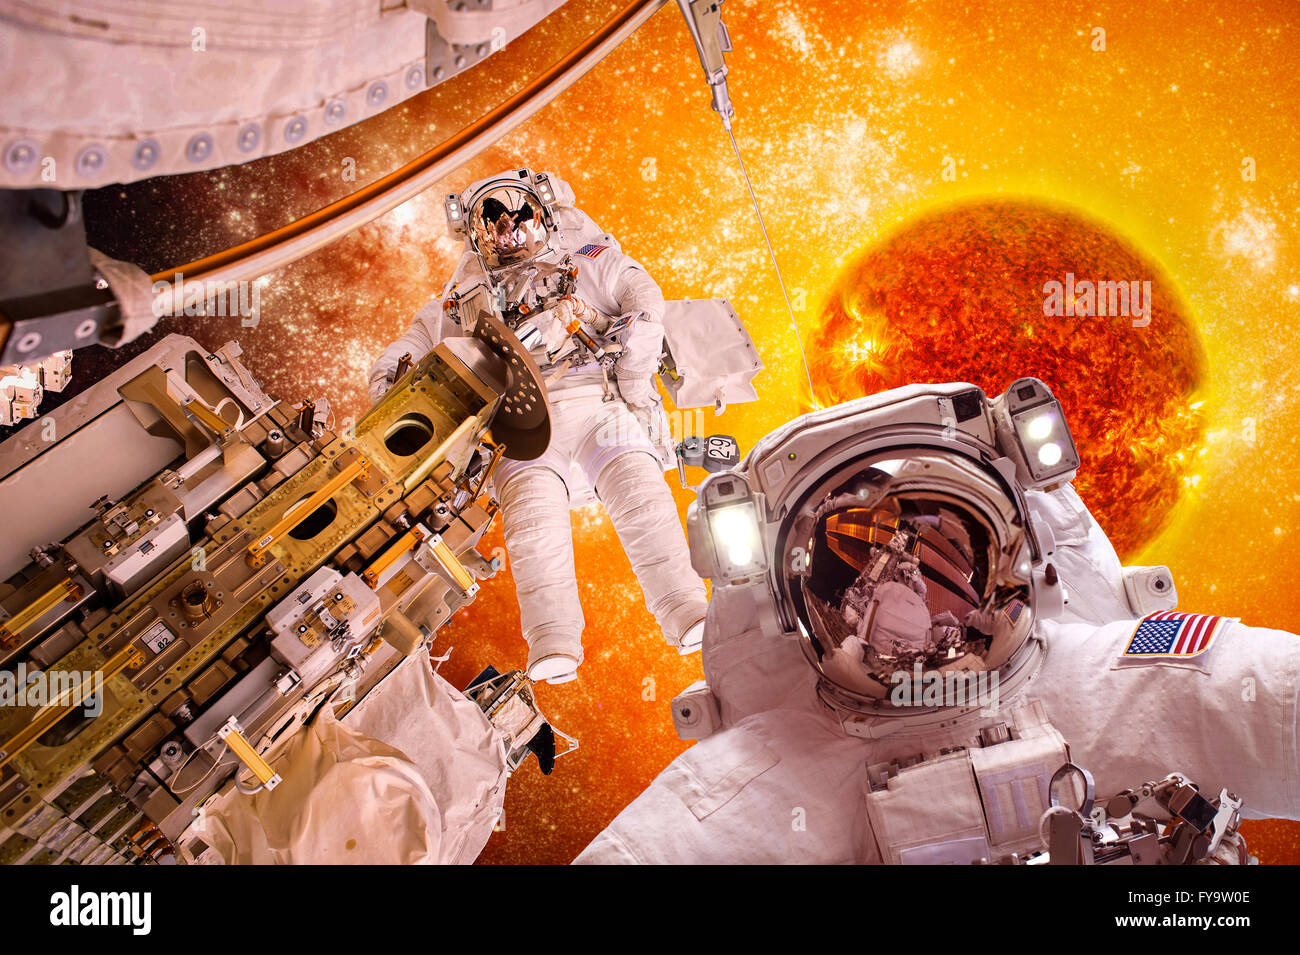 Spacecraft and astronauts in space on background sun star. Elements of this image furnished by NASA. - Stock Image